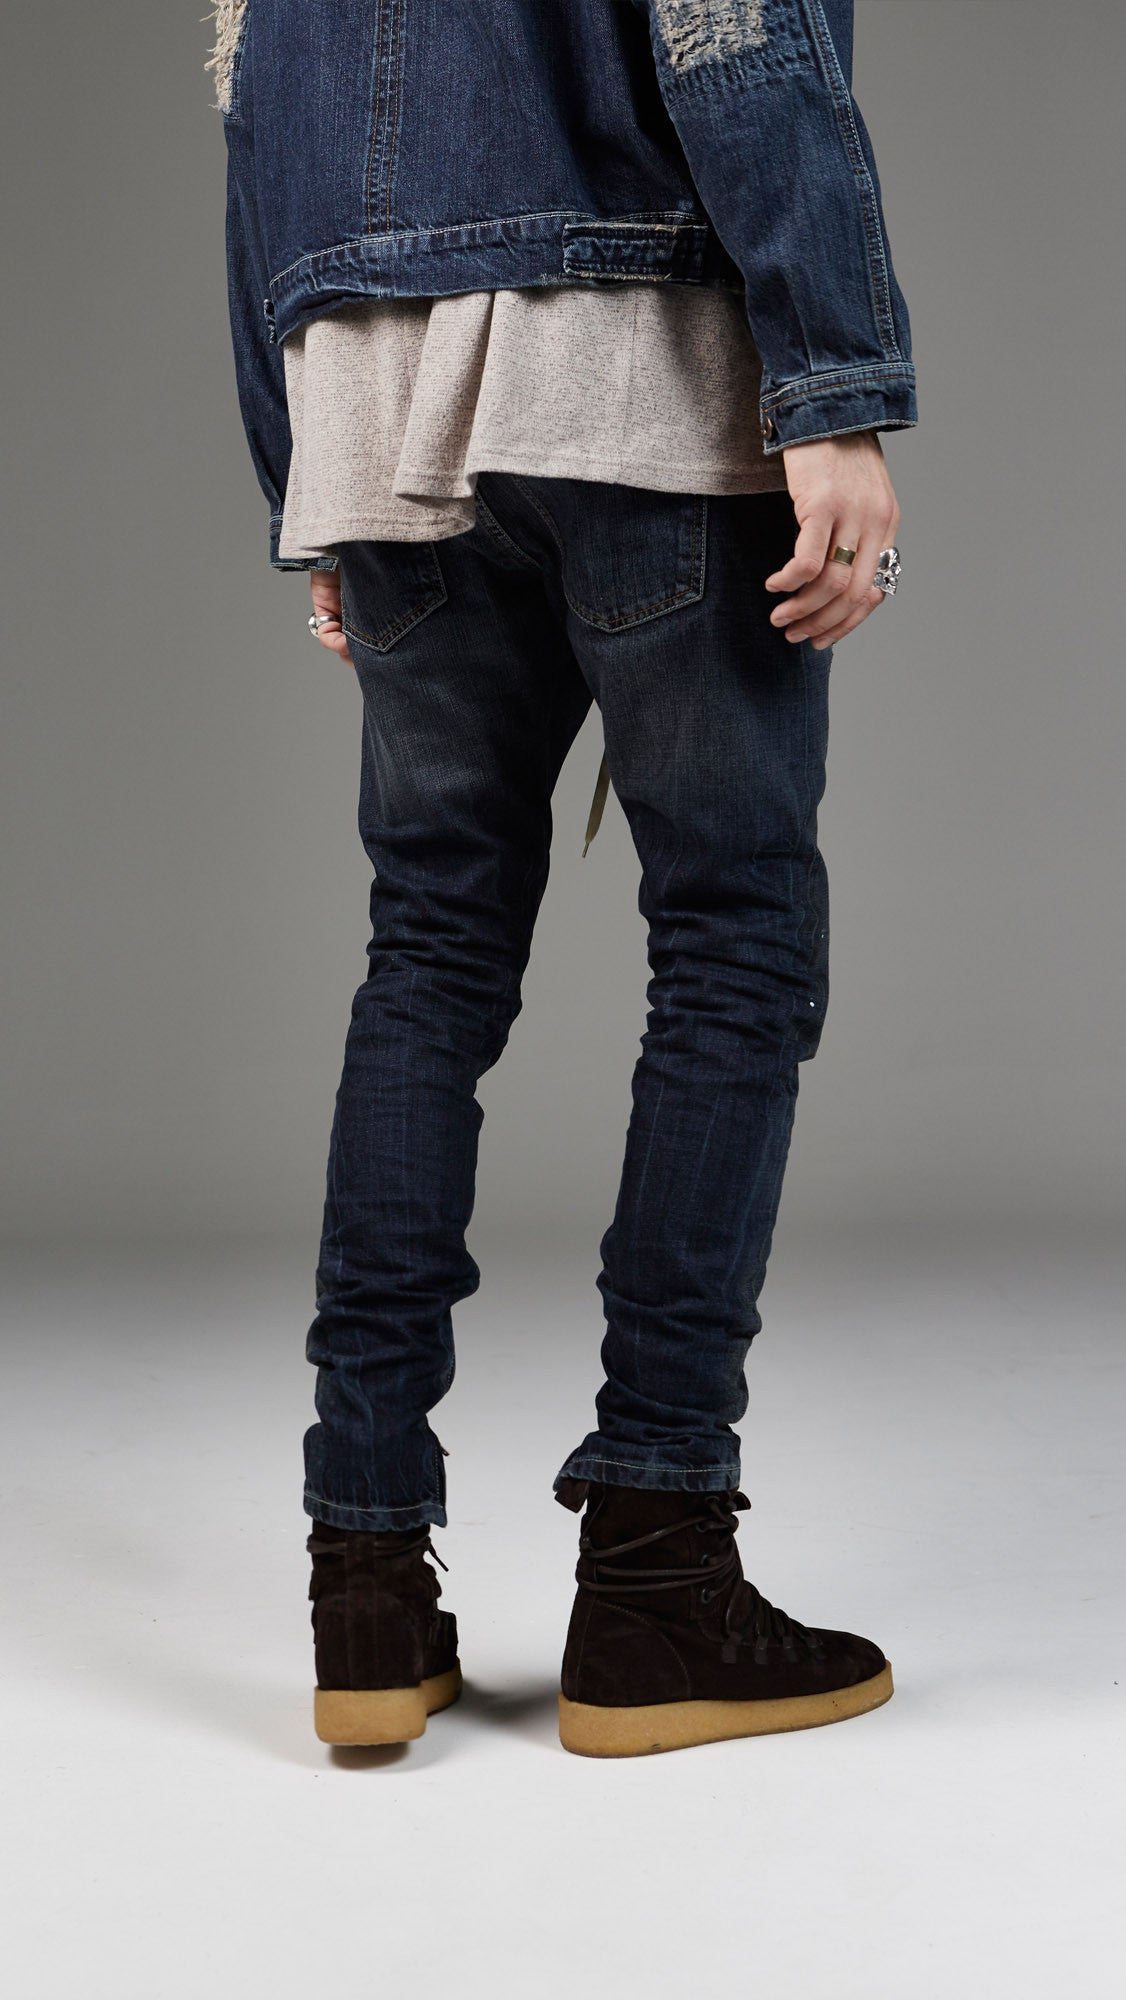 Basic Selvedge Denim - Vintage